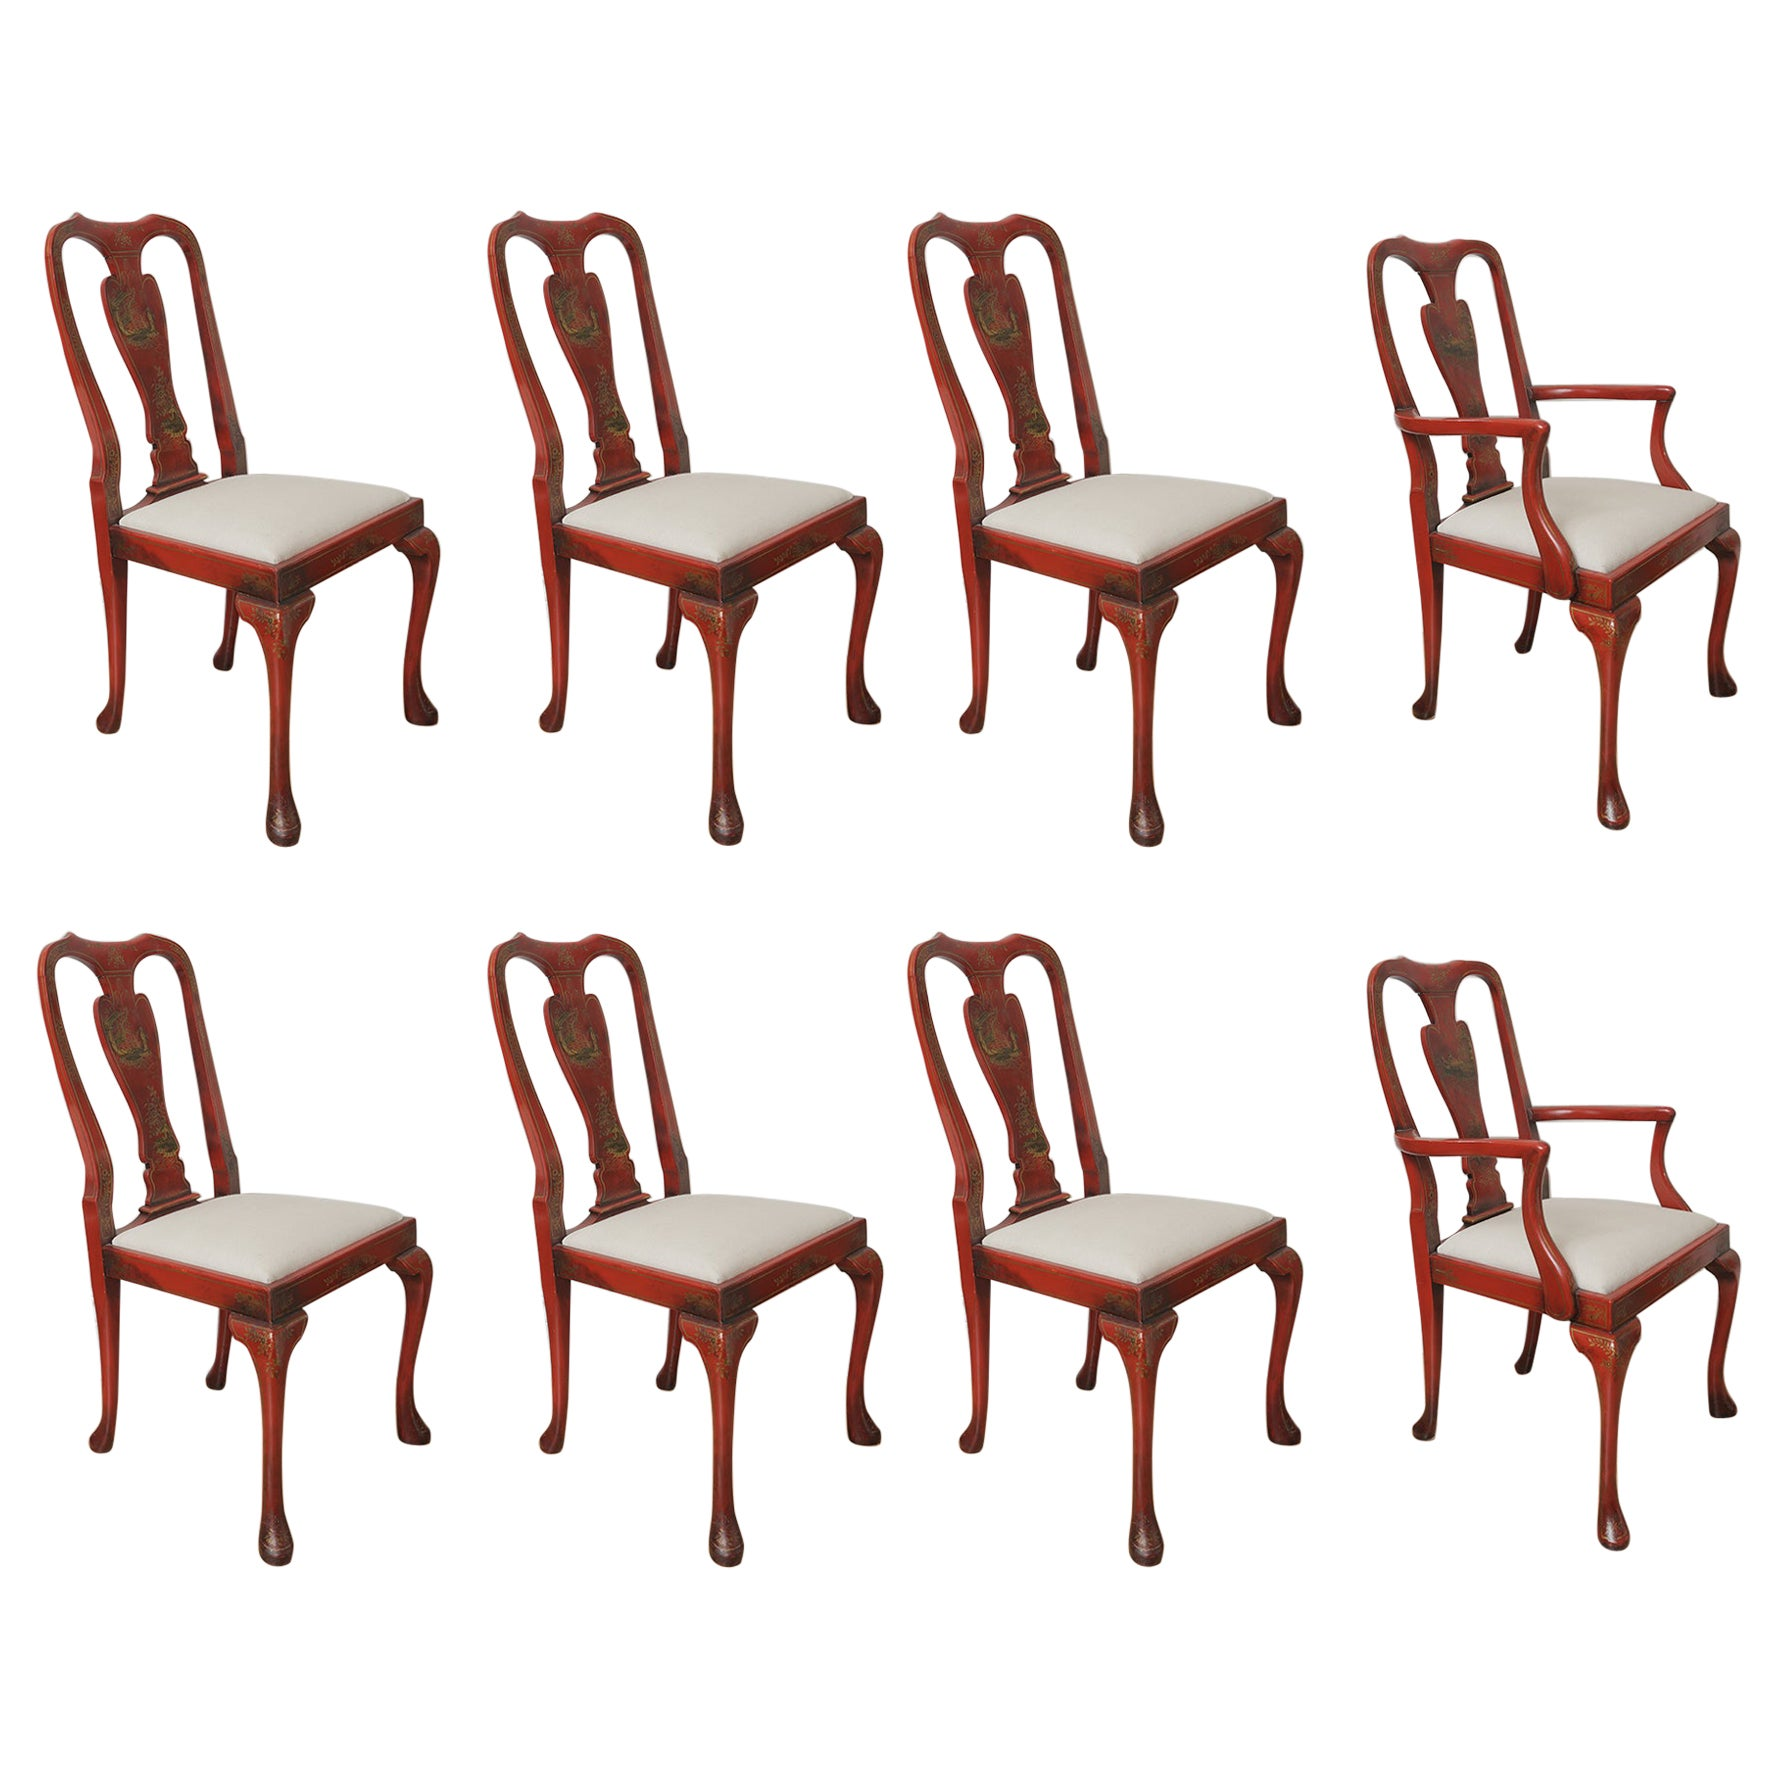 Set of Eight 19th Century Chinoiserie Style Dining Chairs